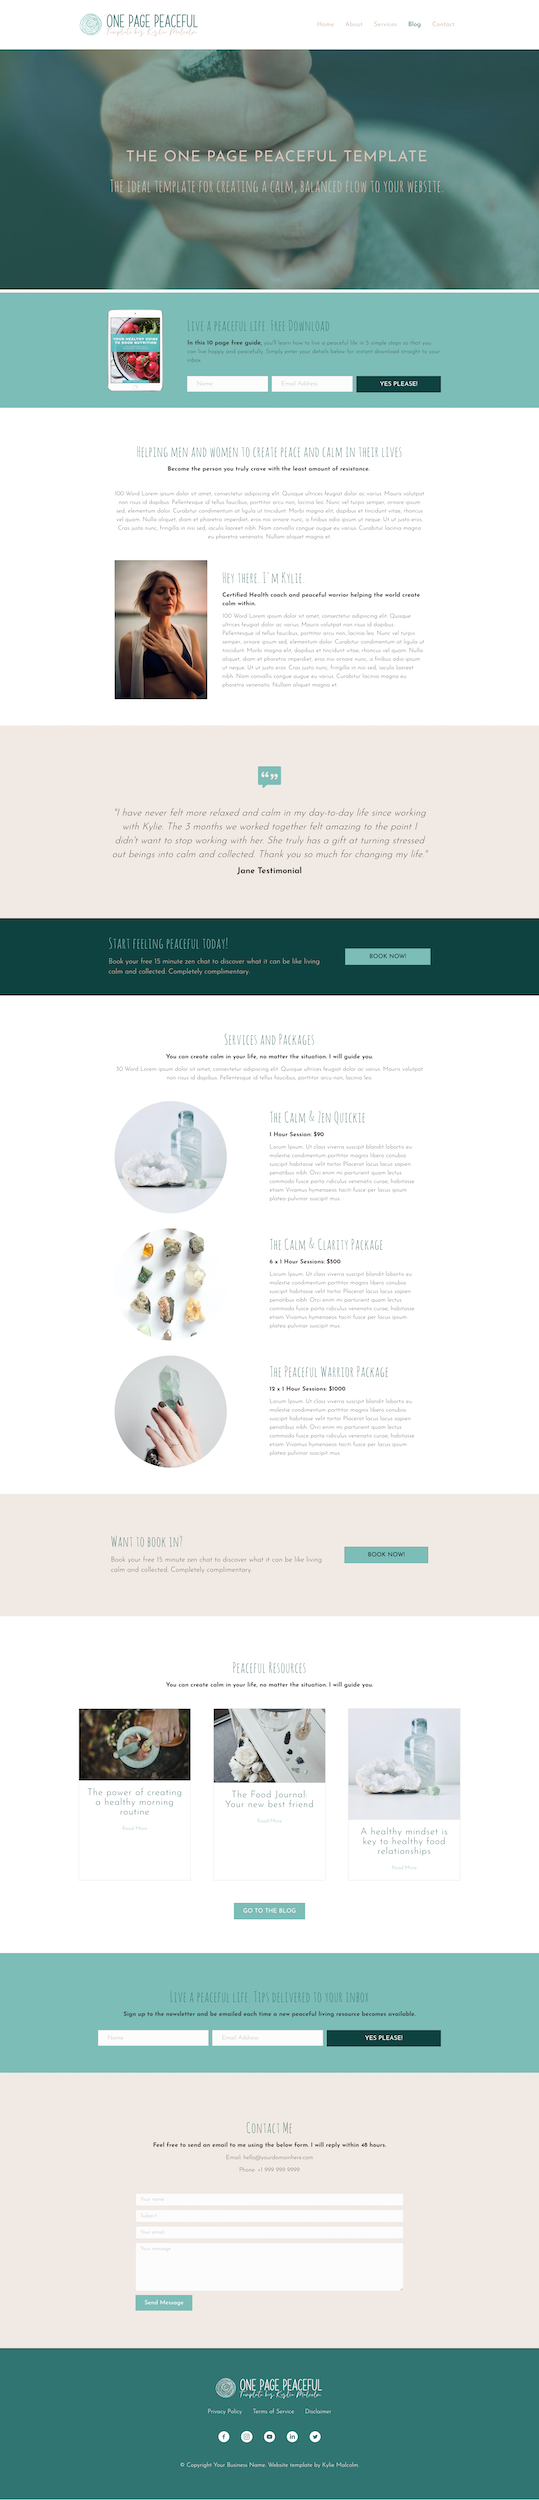 One Page Peaceful Website Design Template for Coaching